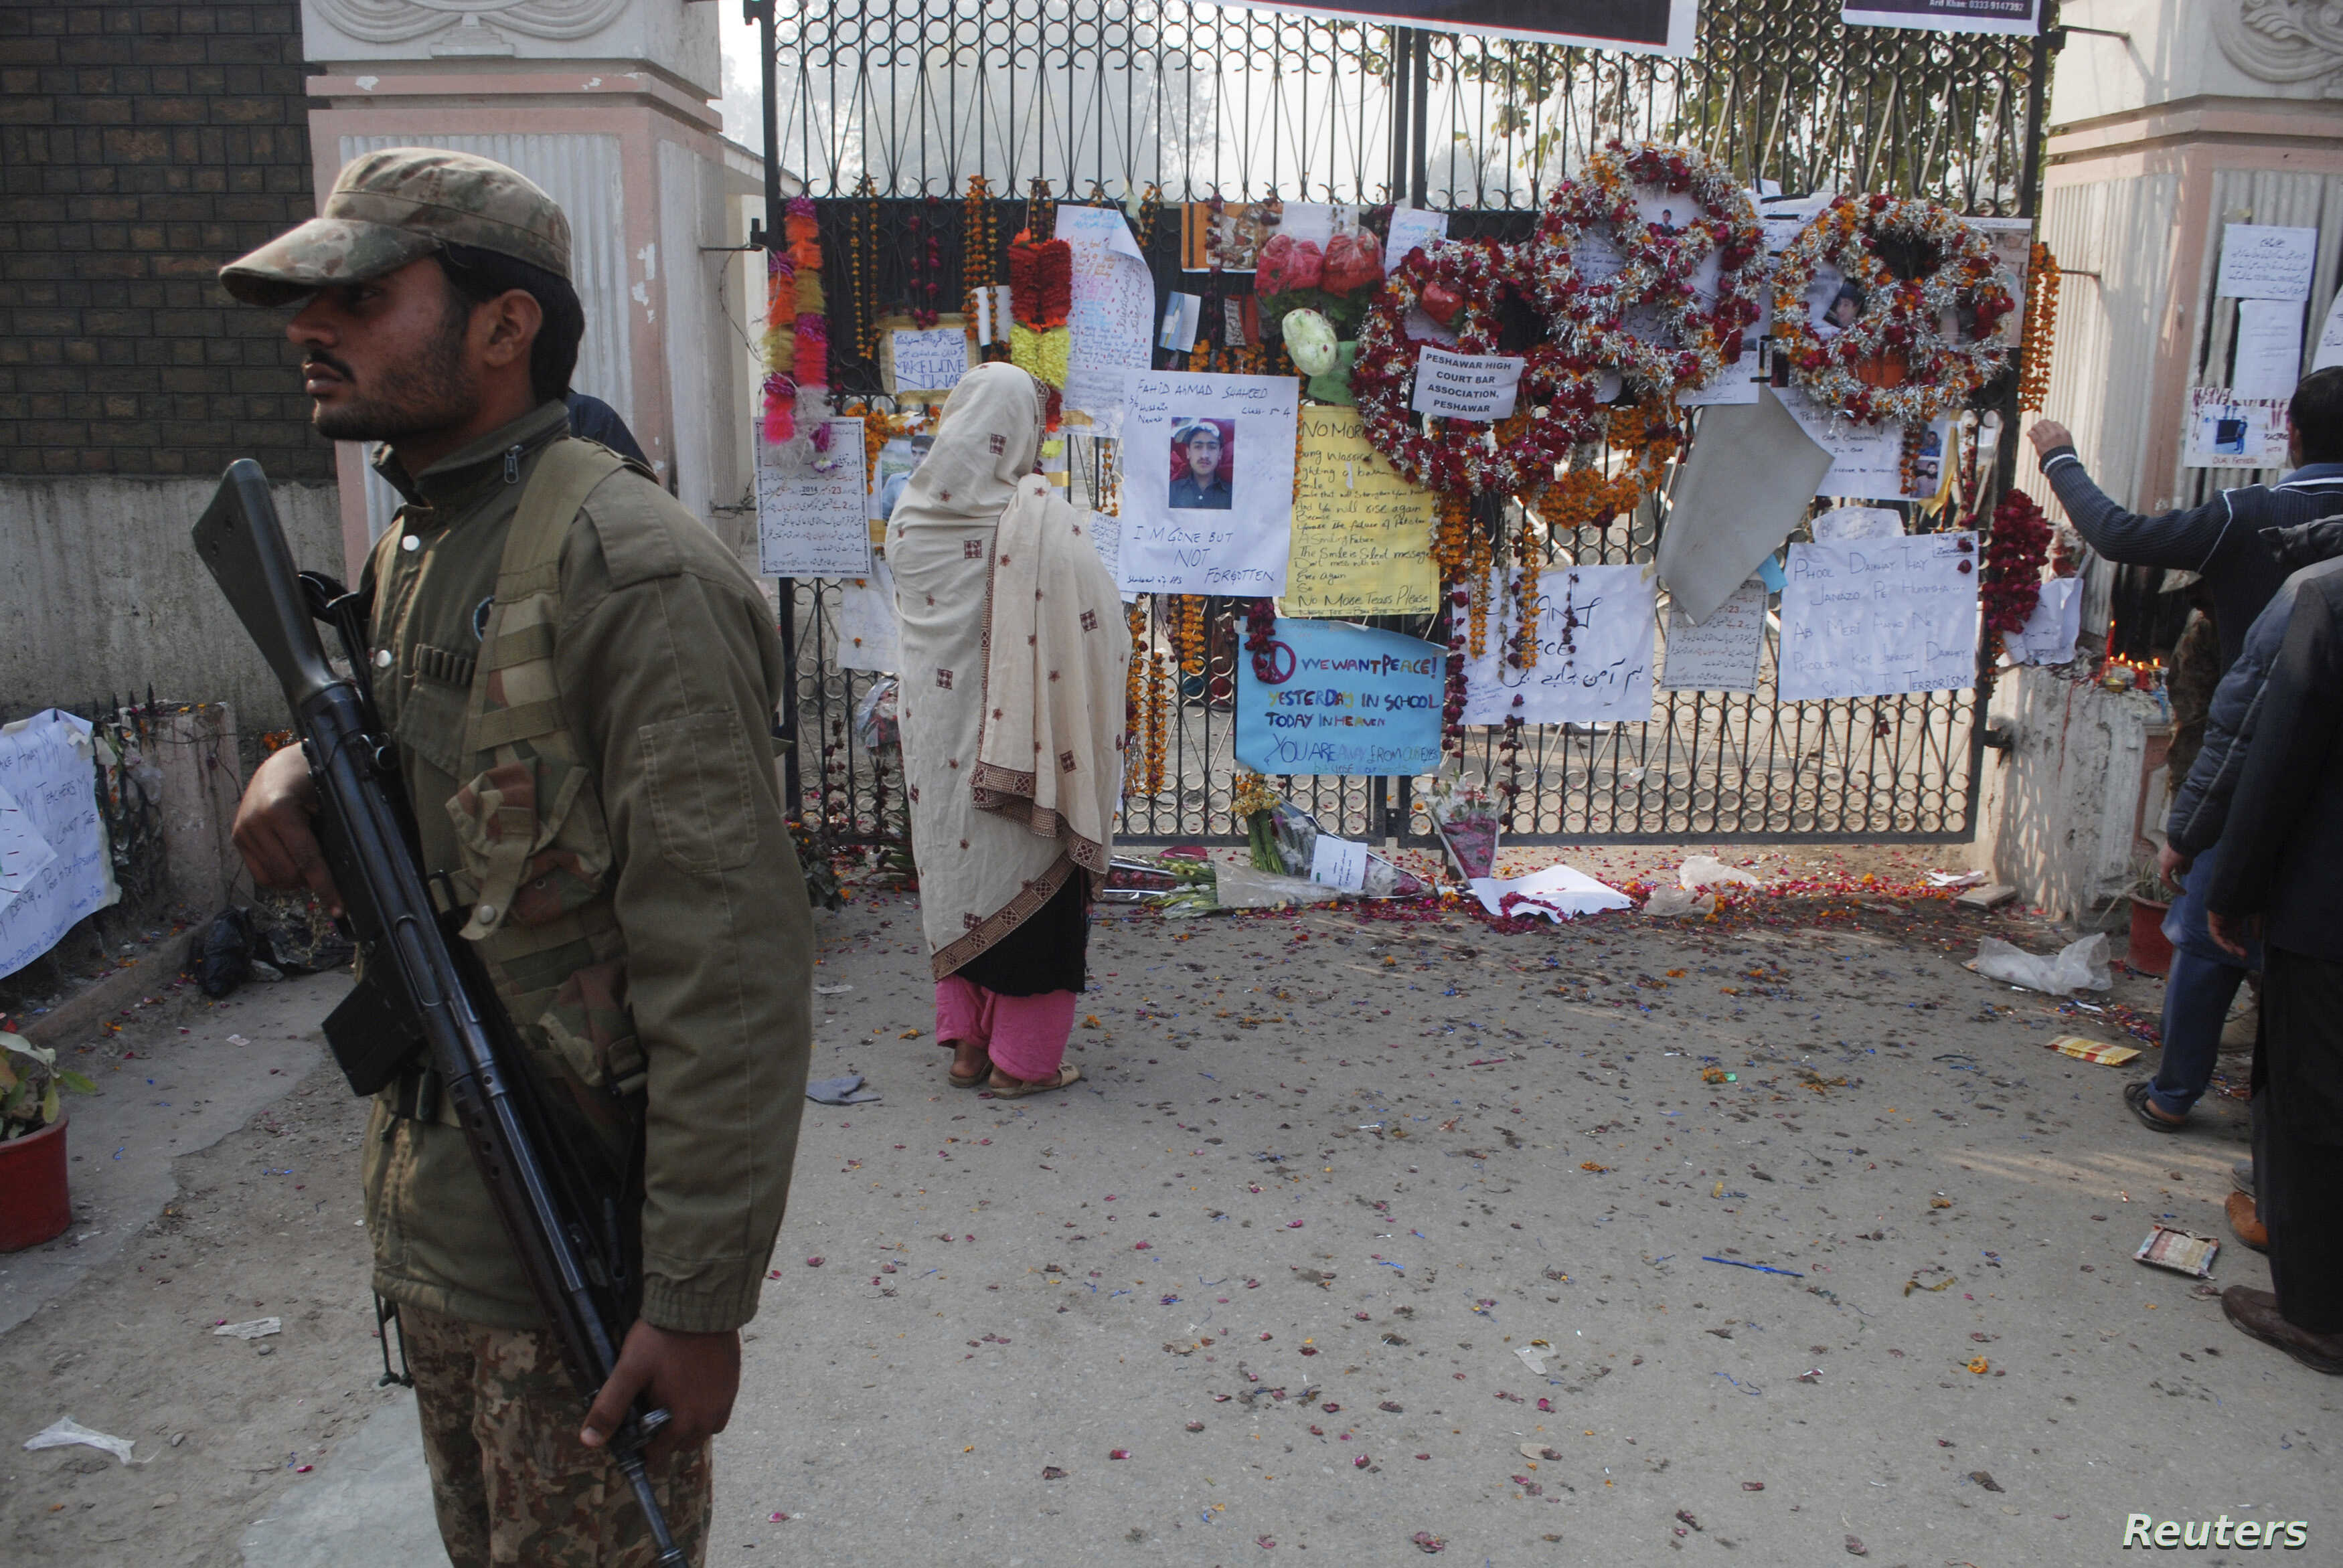 A soldier stands near a woman reading messages left by people for the victims of the Taliban attack on a school, in Peshawar, Pakistan, Dec. 23, 2014.